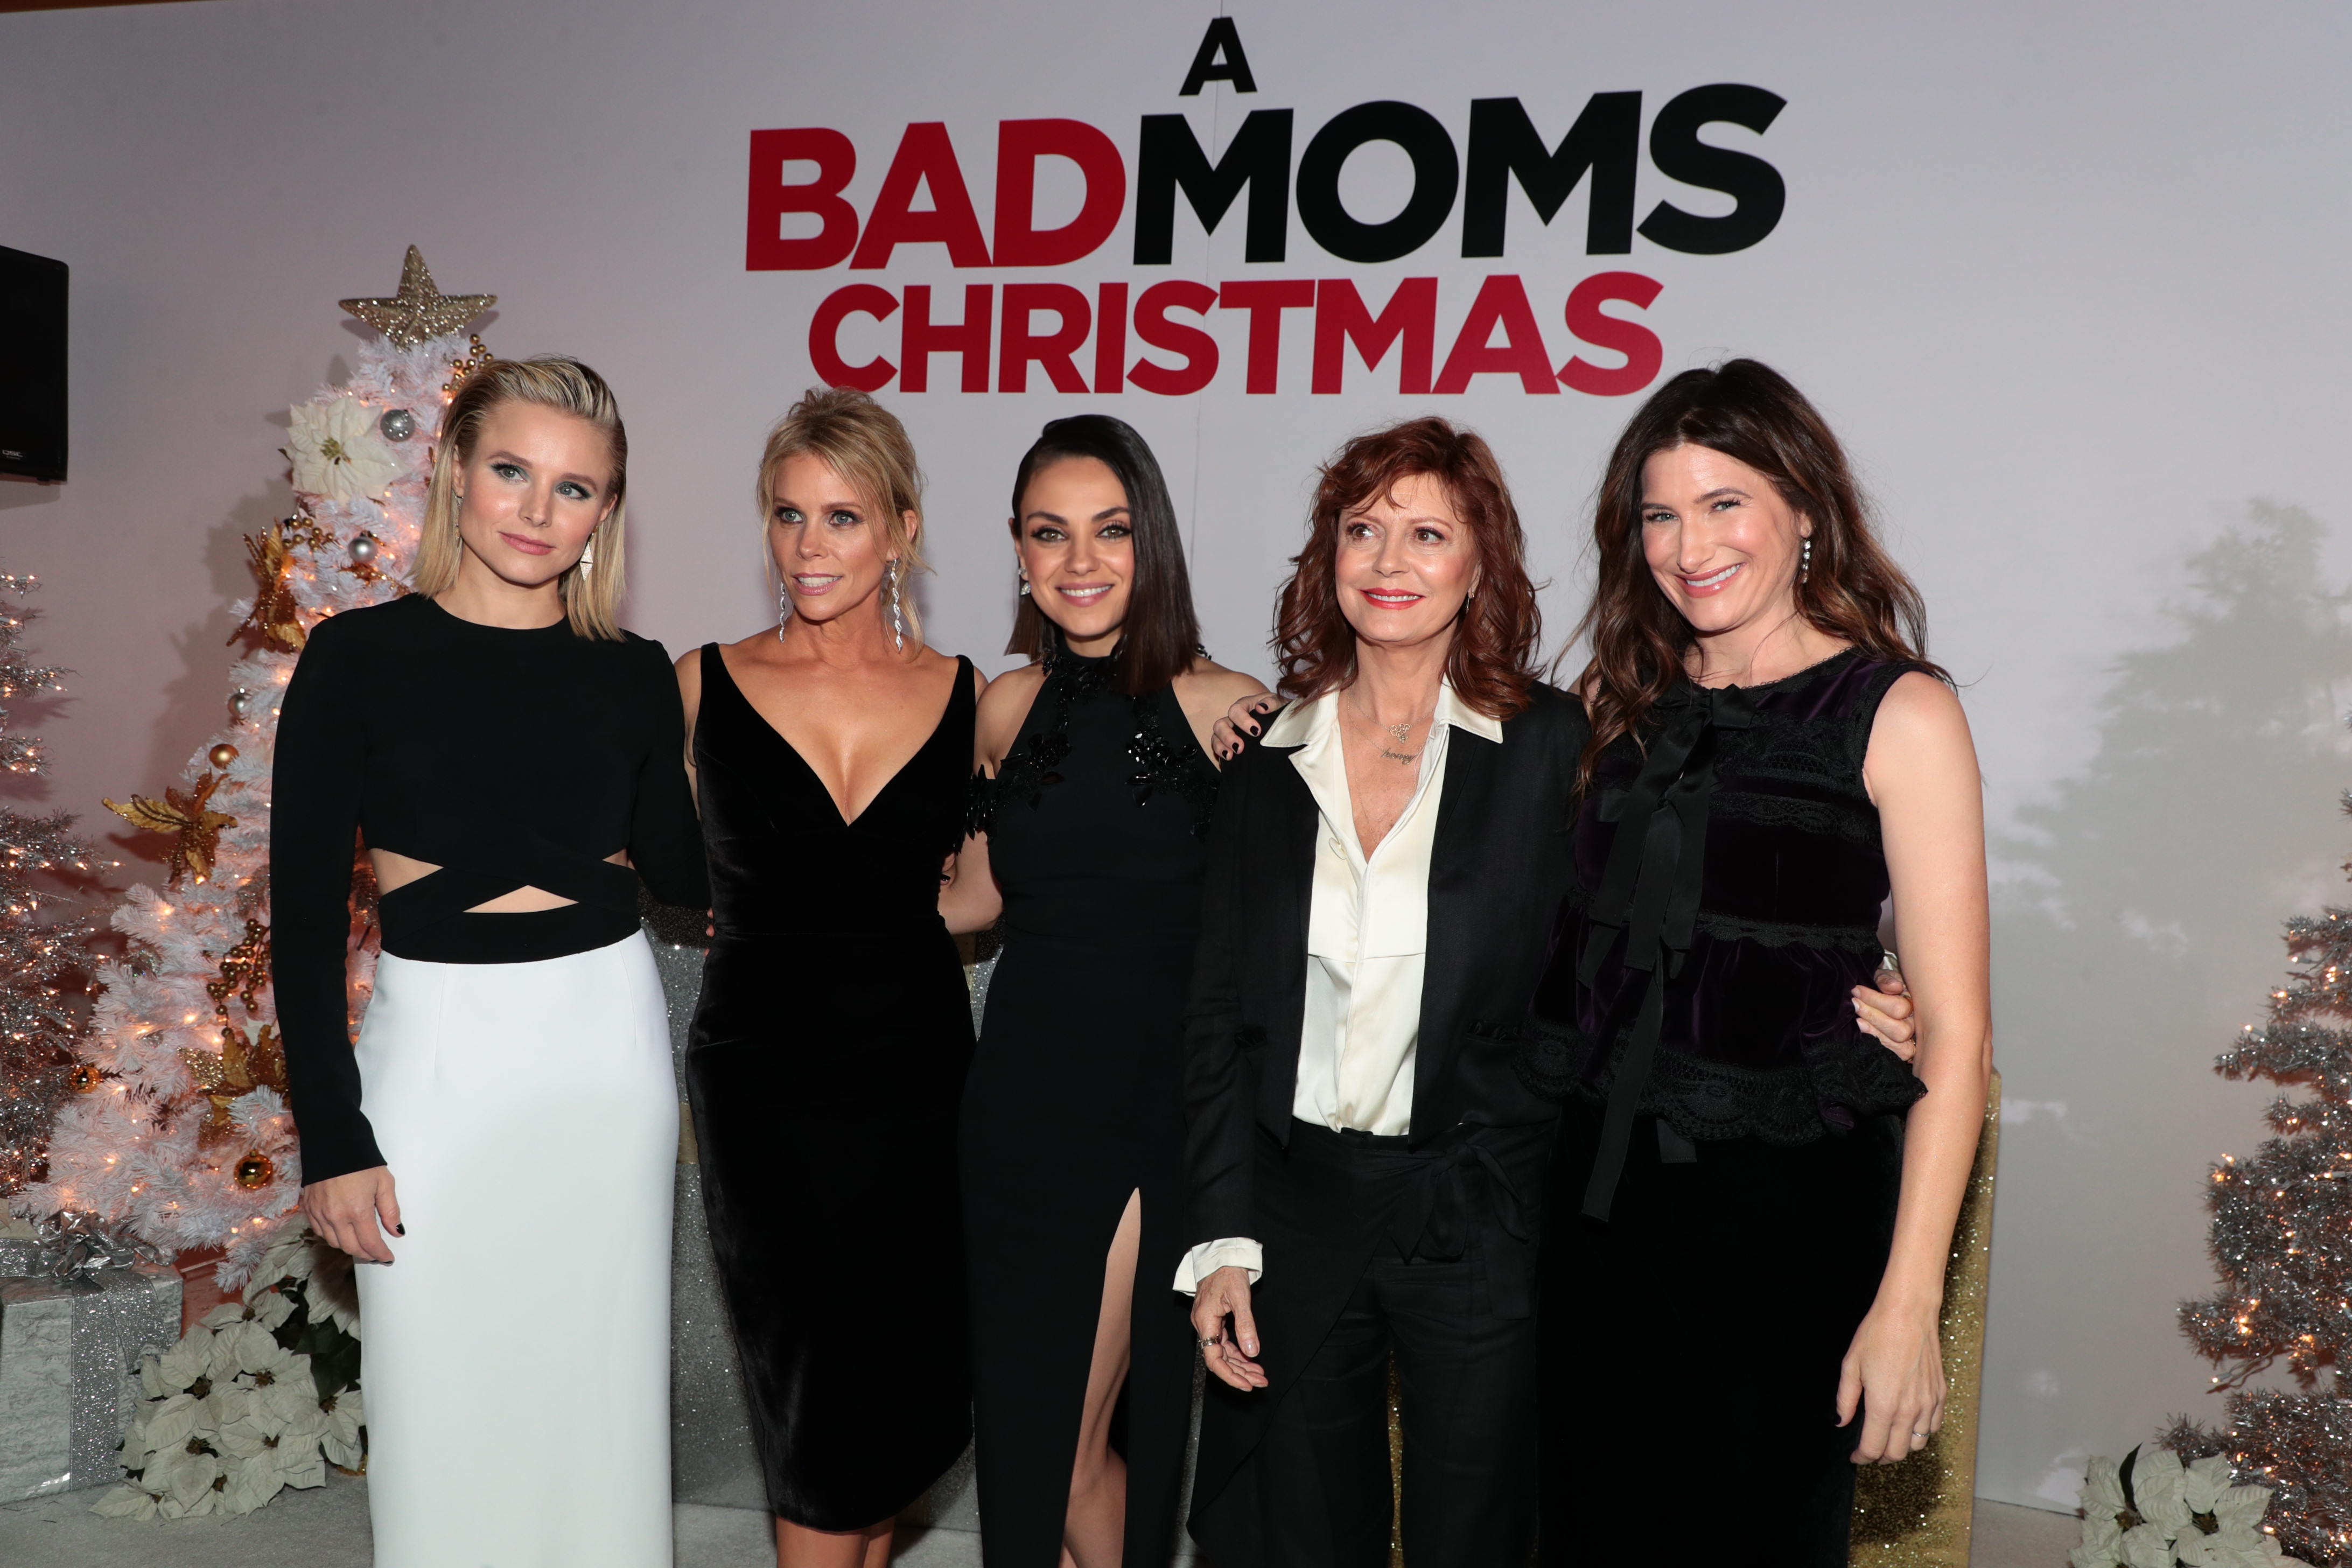 a bad moms christmas puts moms on the naughty list cast interviews - Black Christmas Cast